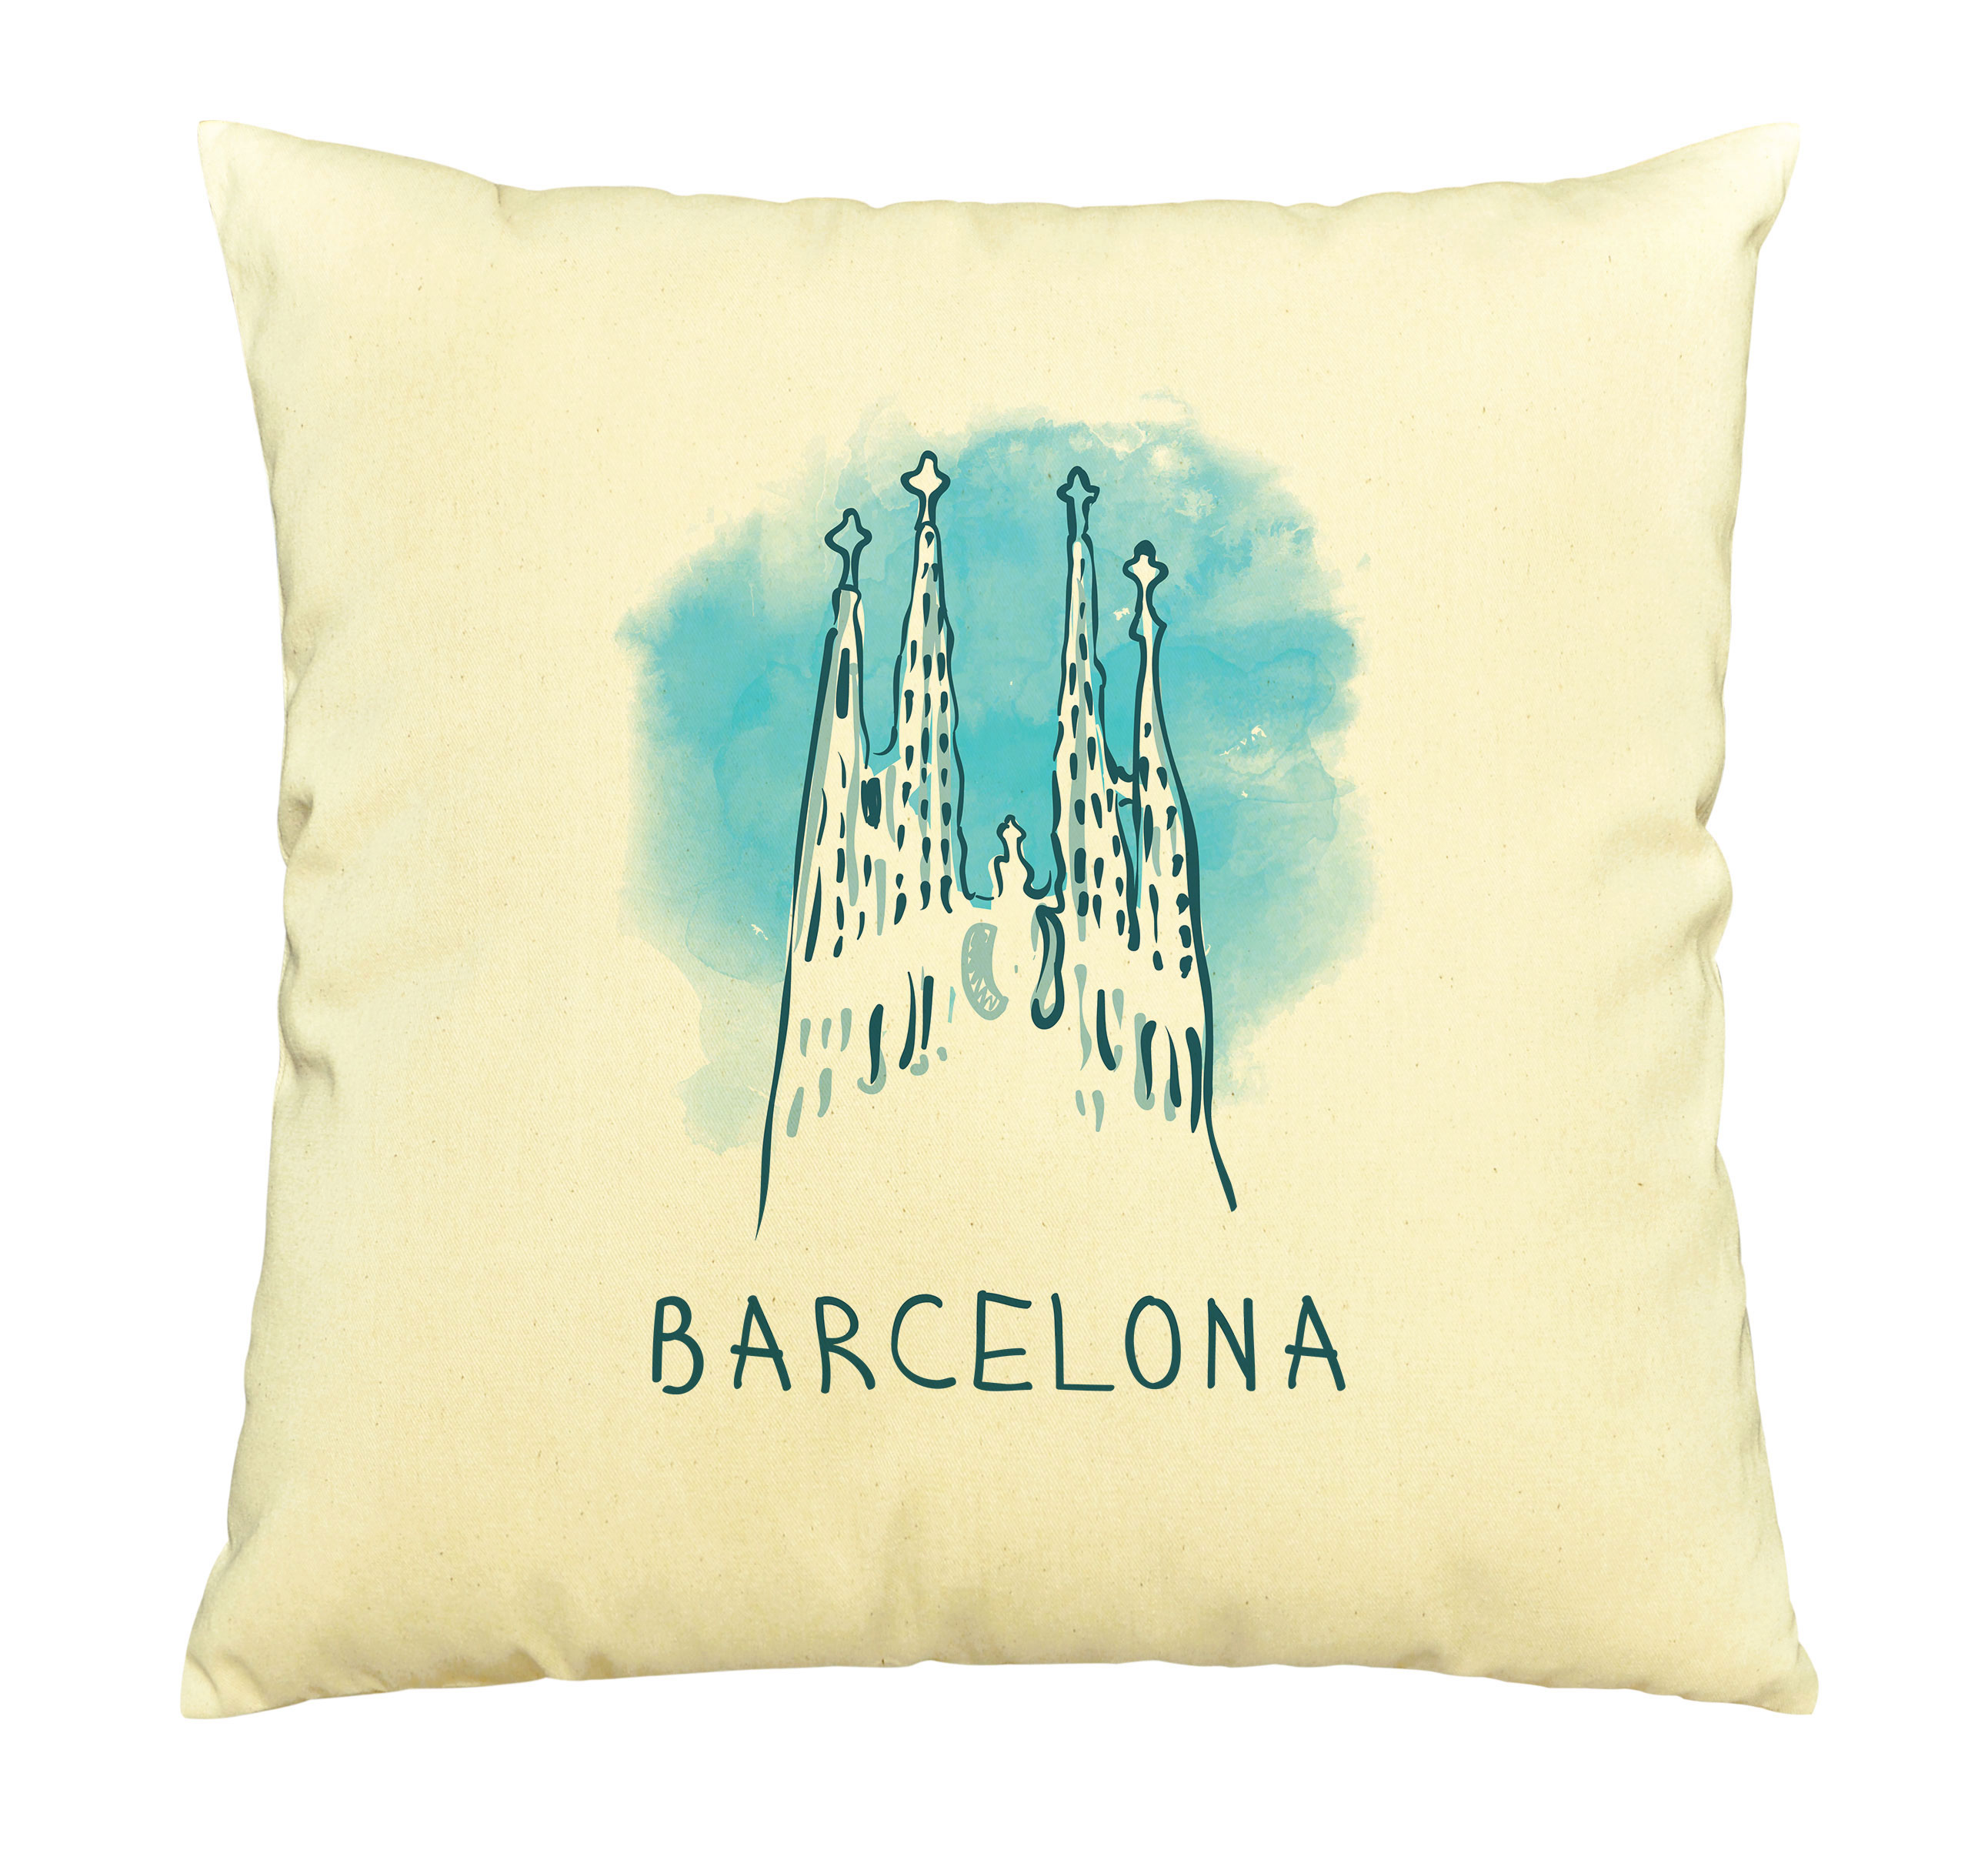 Barcelona Printed Cotton Decorative Pillows Cover Cushion Case Vplc 03 Walmart Com Walmart Com